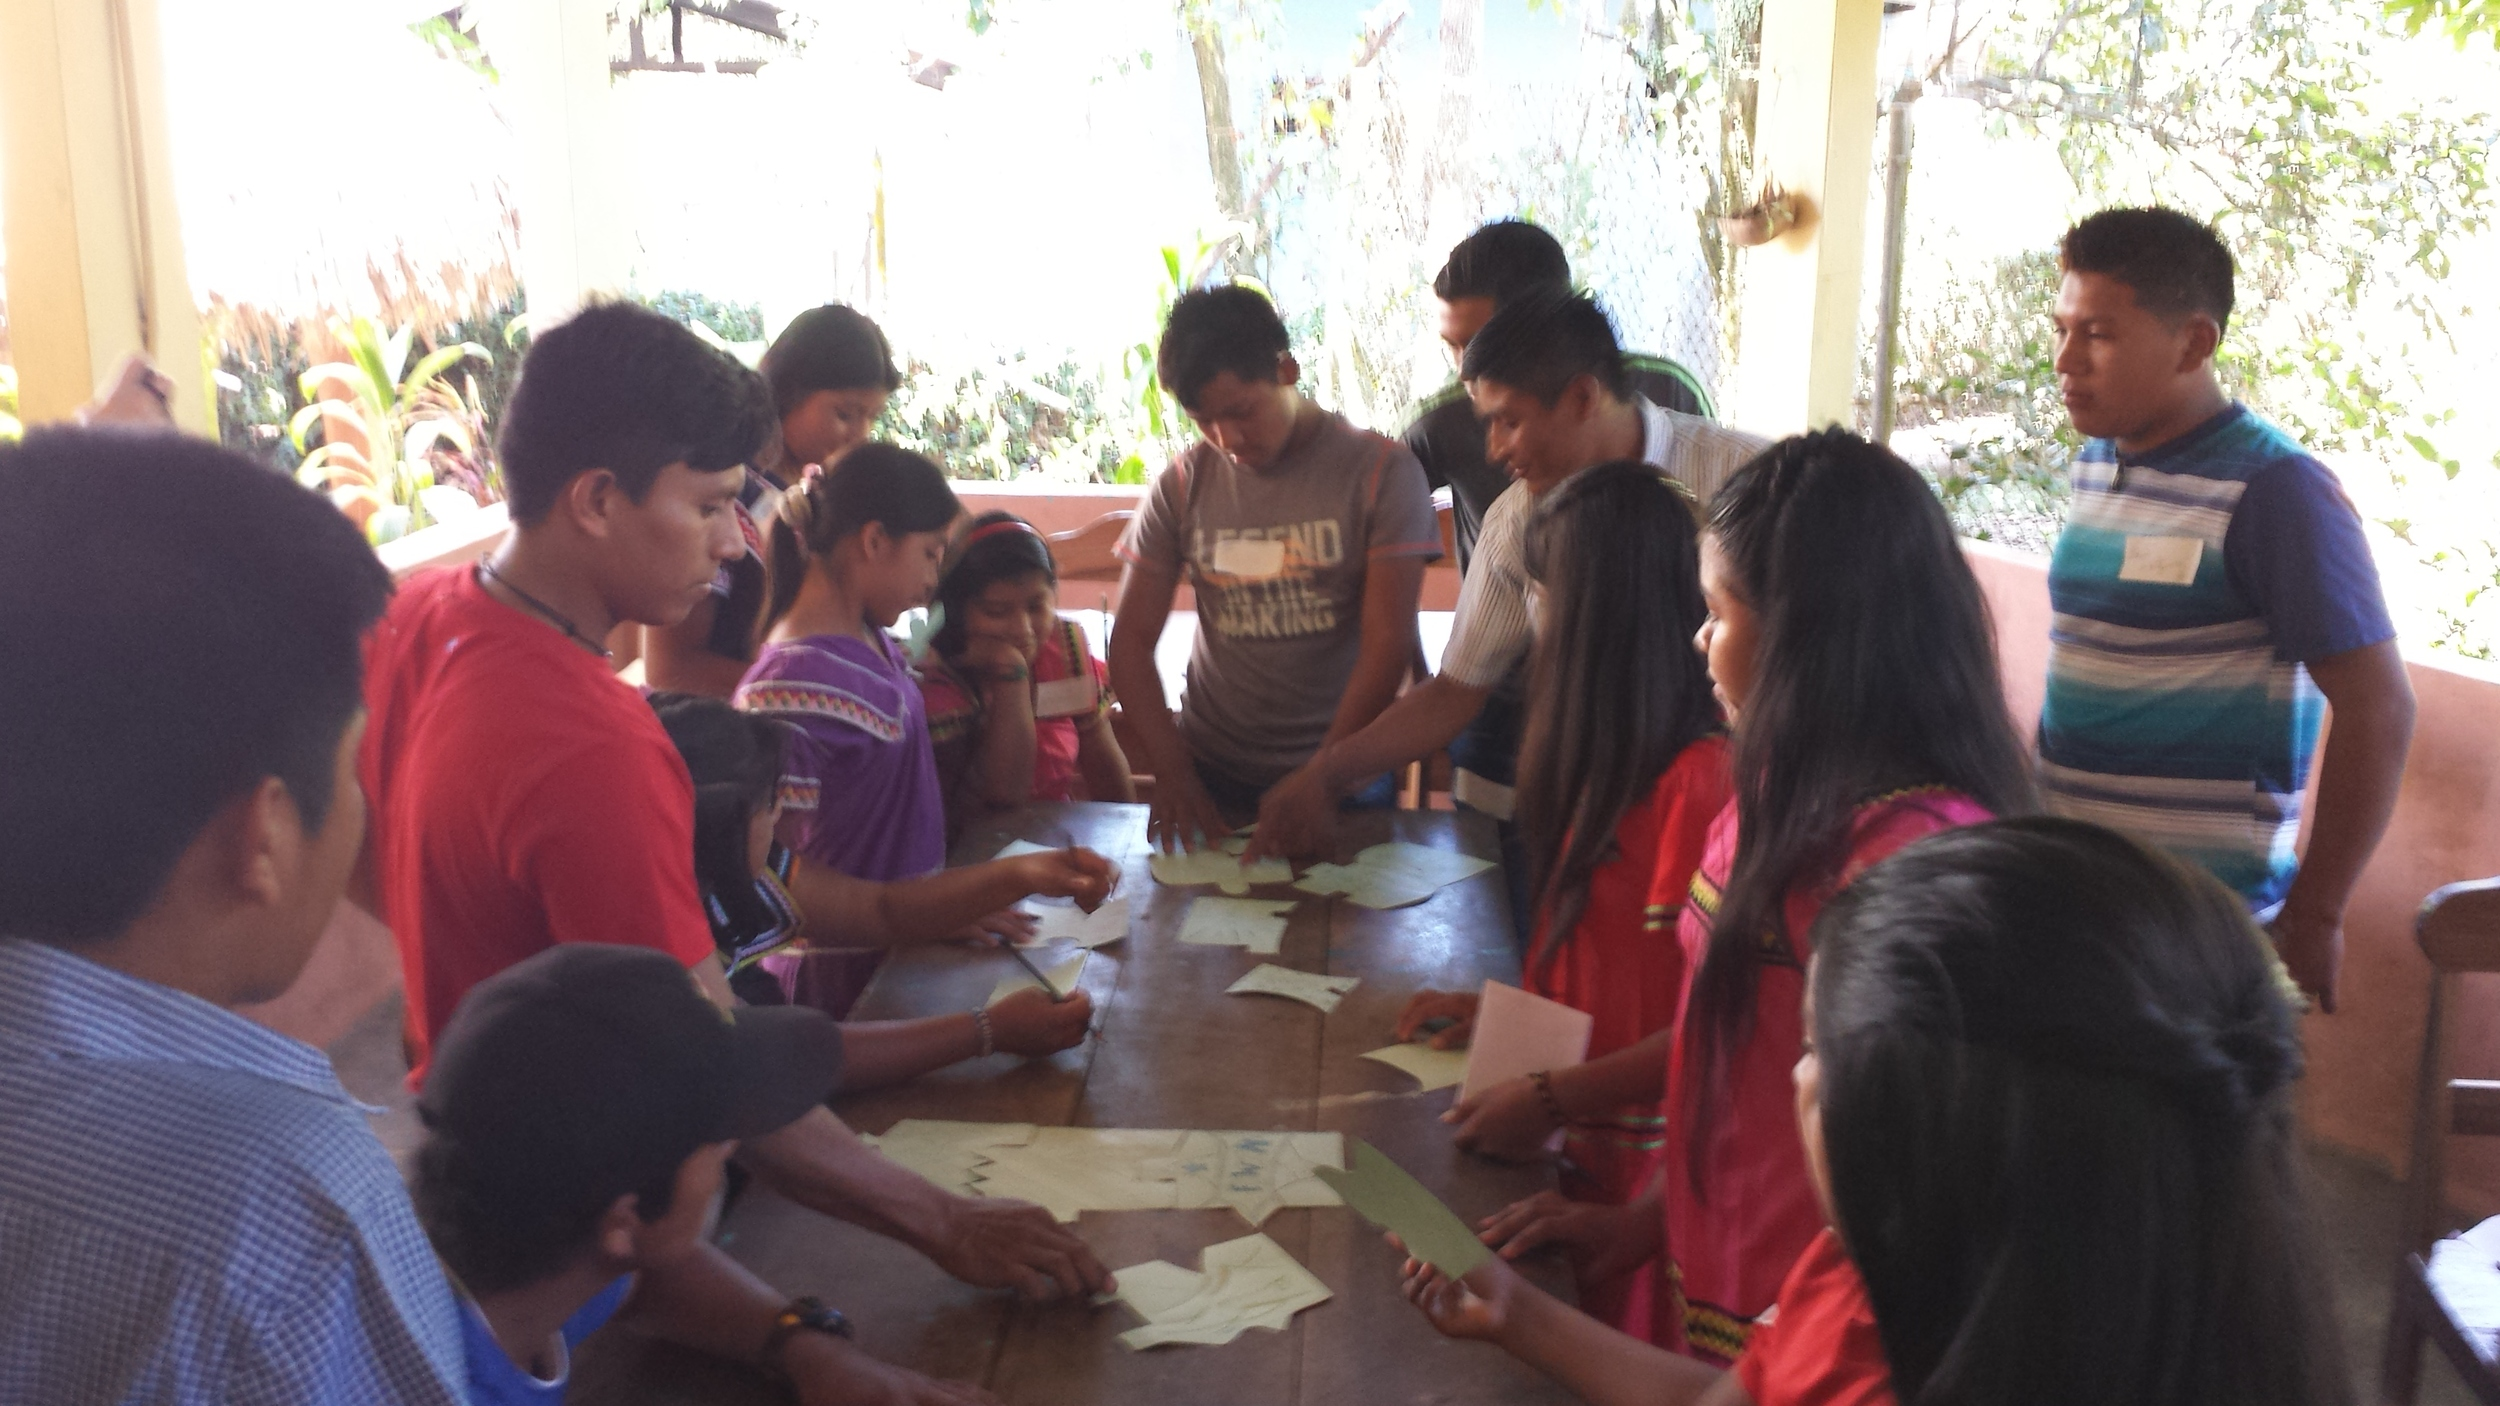 9.   Students completing a puzzle with each of their names on one piece. Our students come from multiple communities and attend many different schools; some have known each other for years, and some have never met or only see each other once a year at the entrega.  It's always great to see our students working together and getting to know each other during the entrega ceremony.